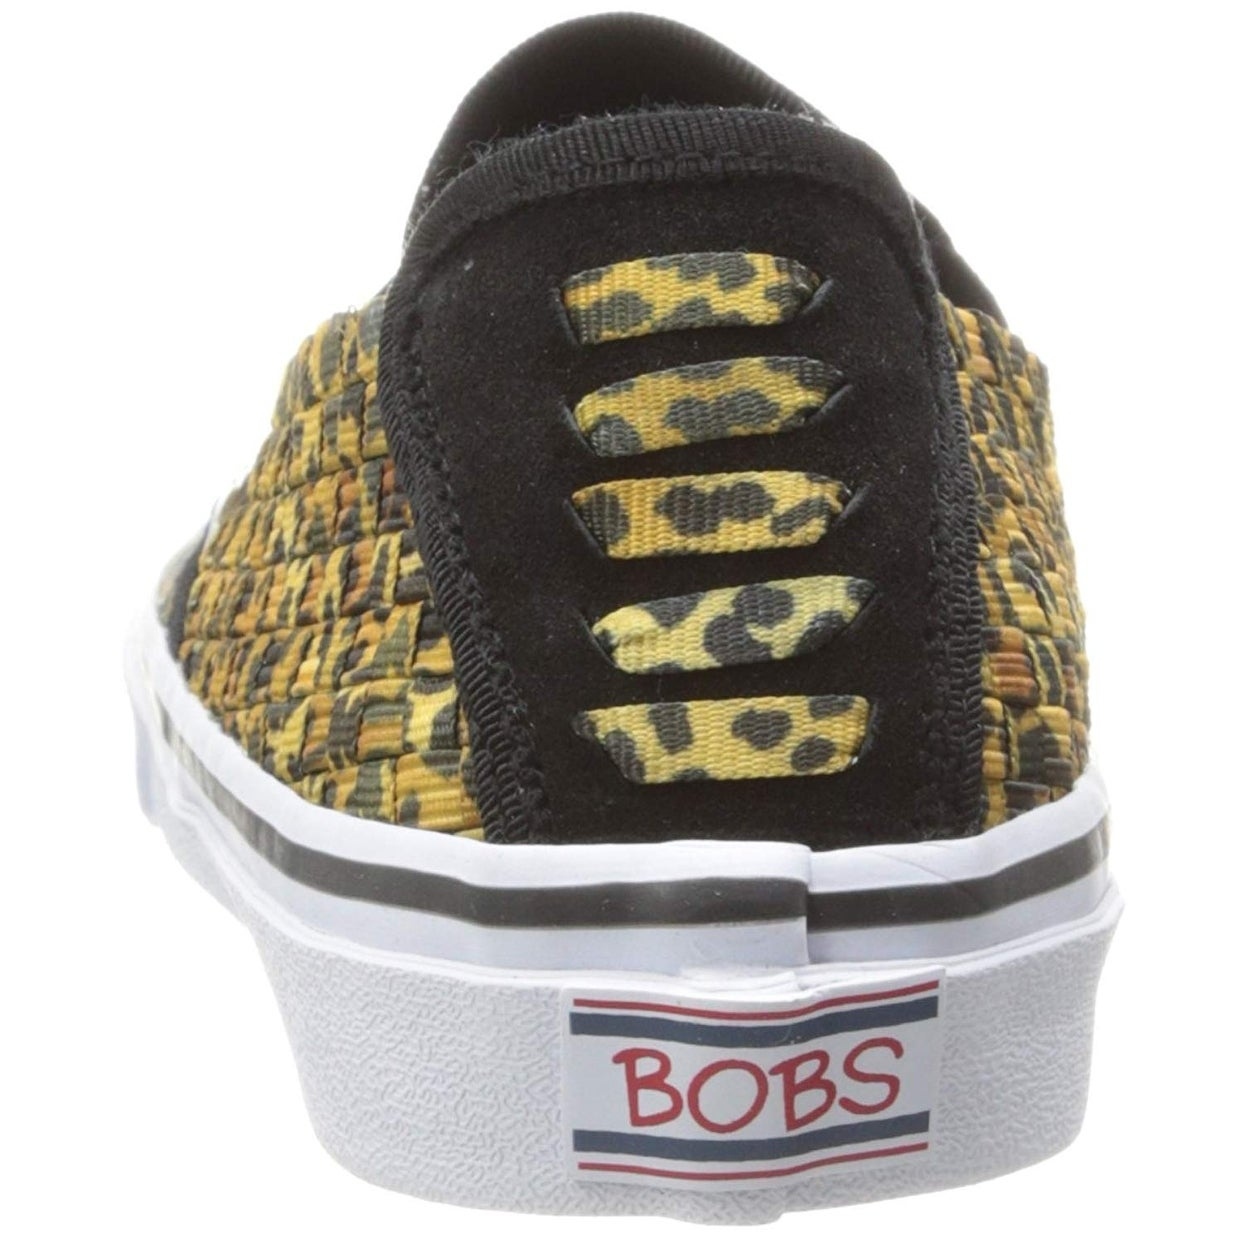 95174267ef55 Shop Skechers BOBS from Women s The Menace Flexor Fashion Sneaker - Free  Shipping Today - Overstock - 23503162